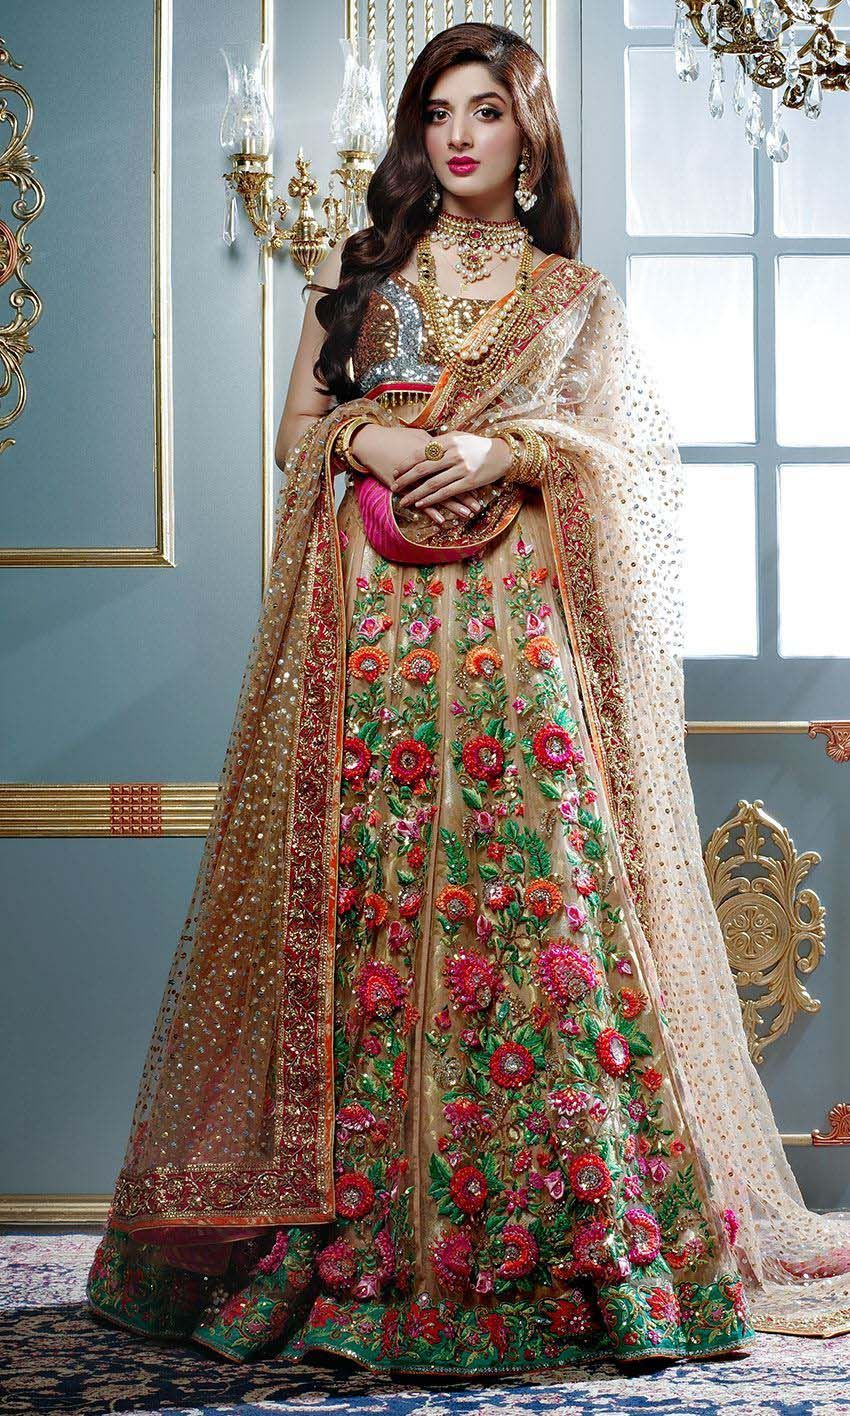 fd3762cdbc46 Latest Designs Bridal Crop Top Lehenga Designs 2018-2019 | lehenga ...